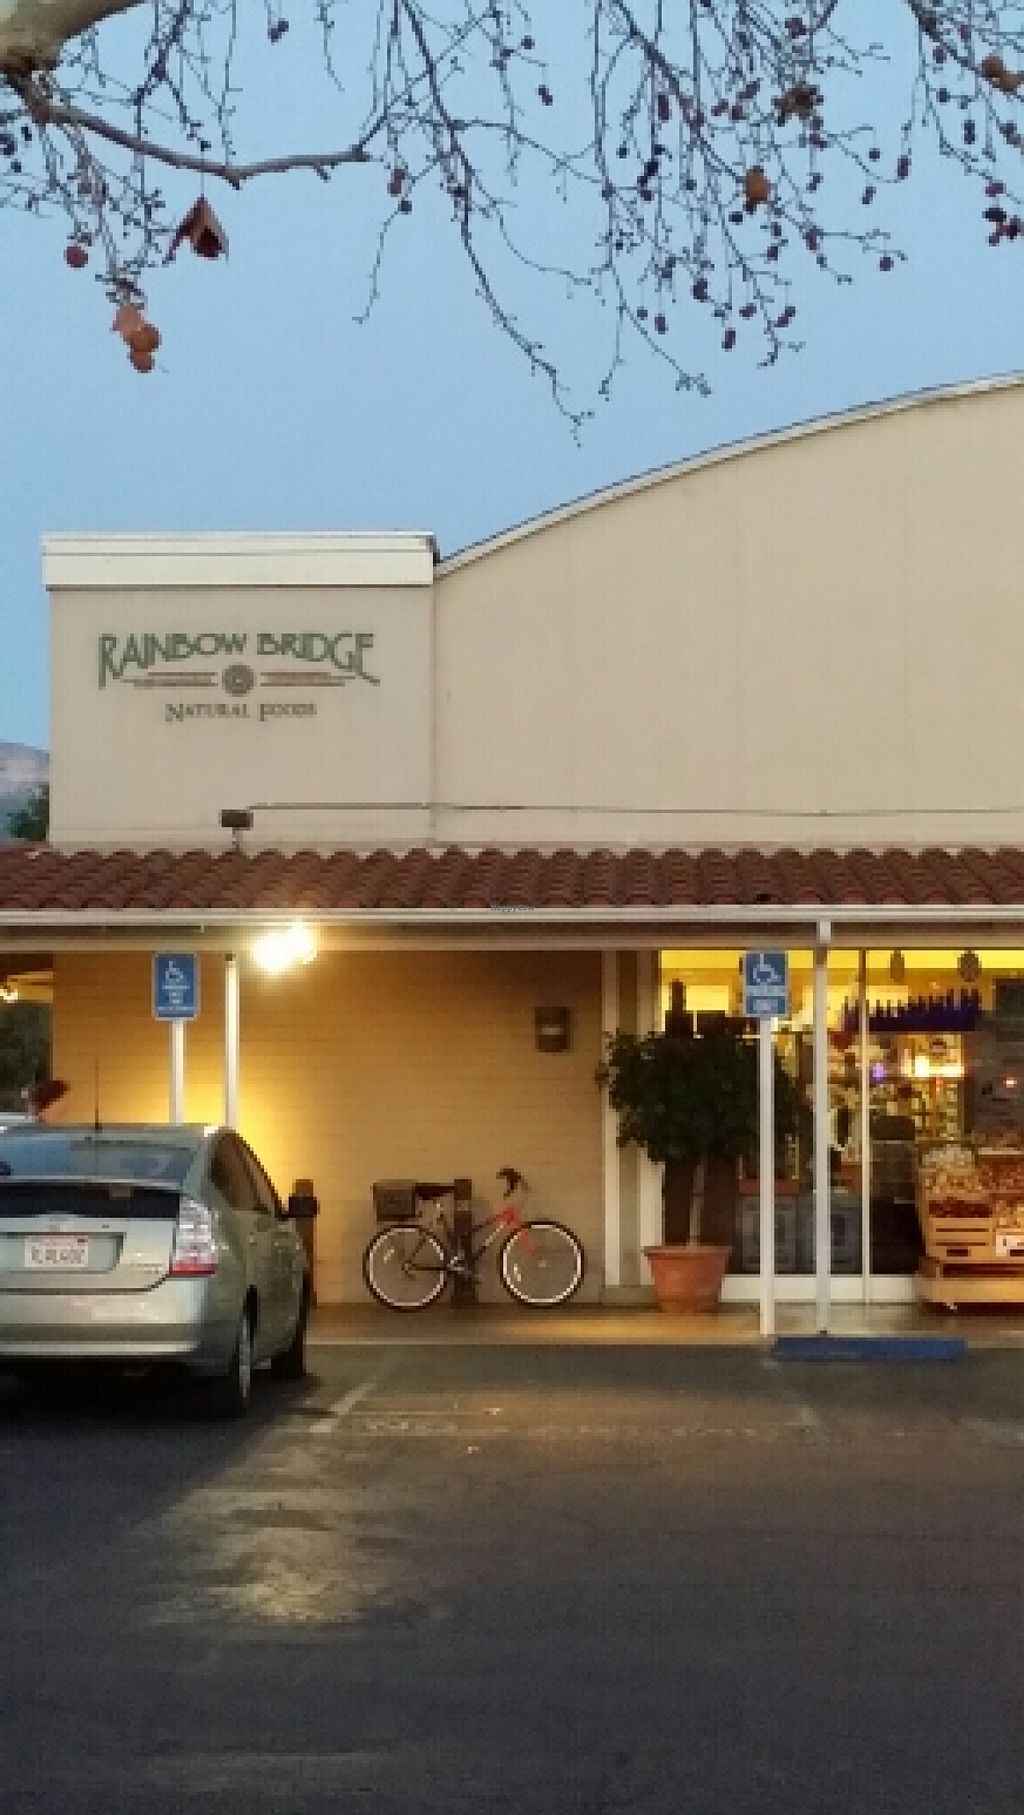 """Photo of Rainbow Bridge Natural Foods  by <a href=""""/members/profile/catbone"""">catbone</a> <br/>Storefront <br/> February 25, 2016  - <a href='/contact/abuse/image/4913/137654'>Report</a>"""